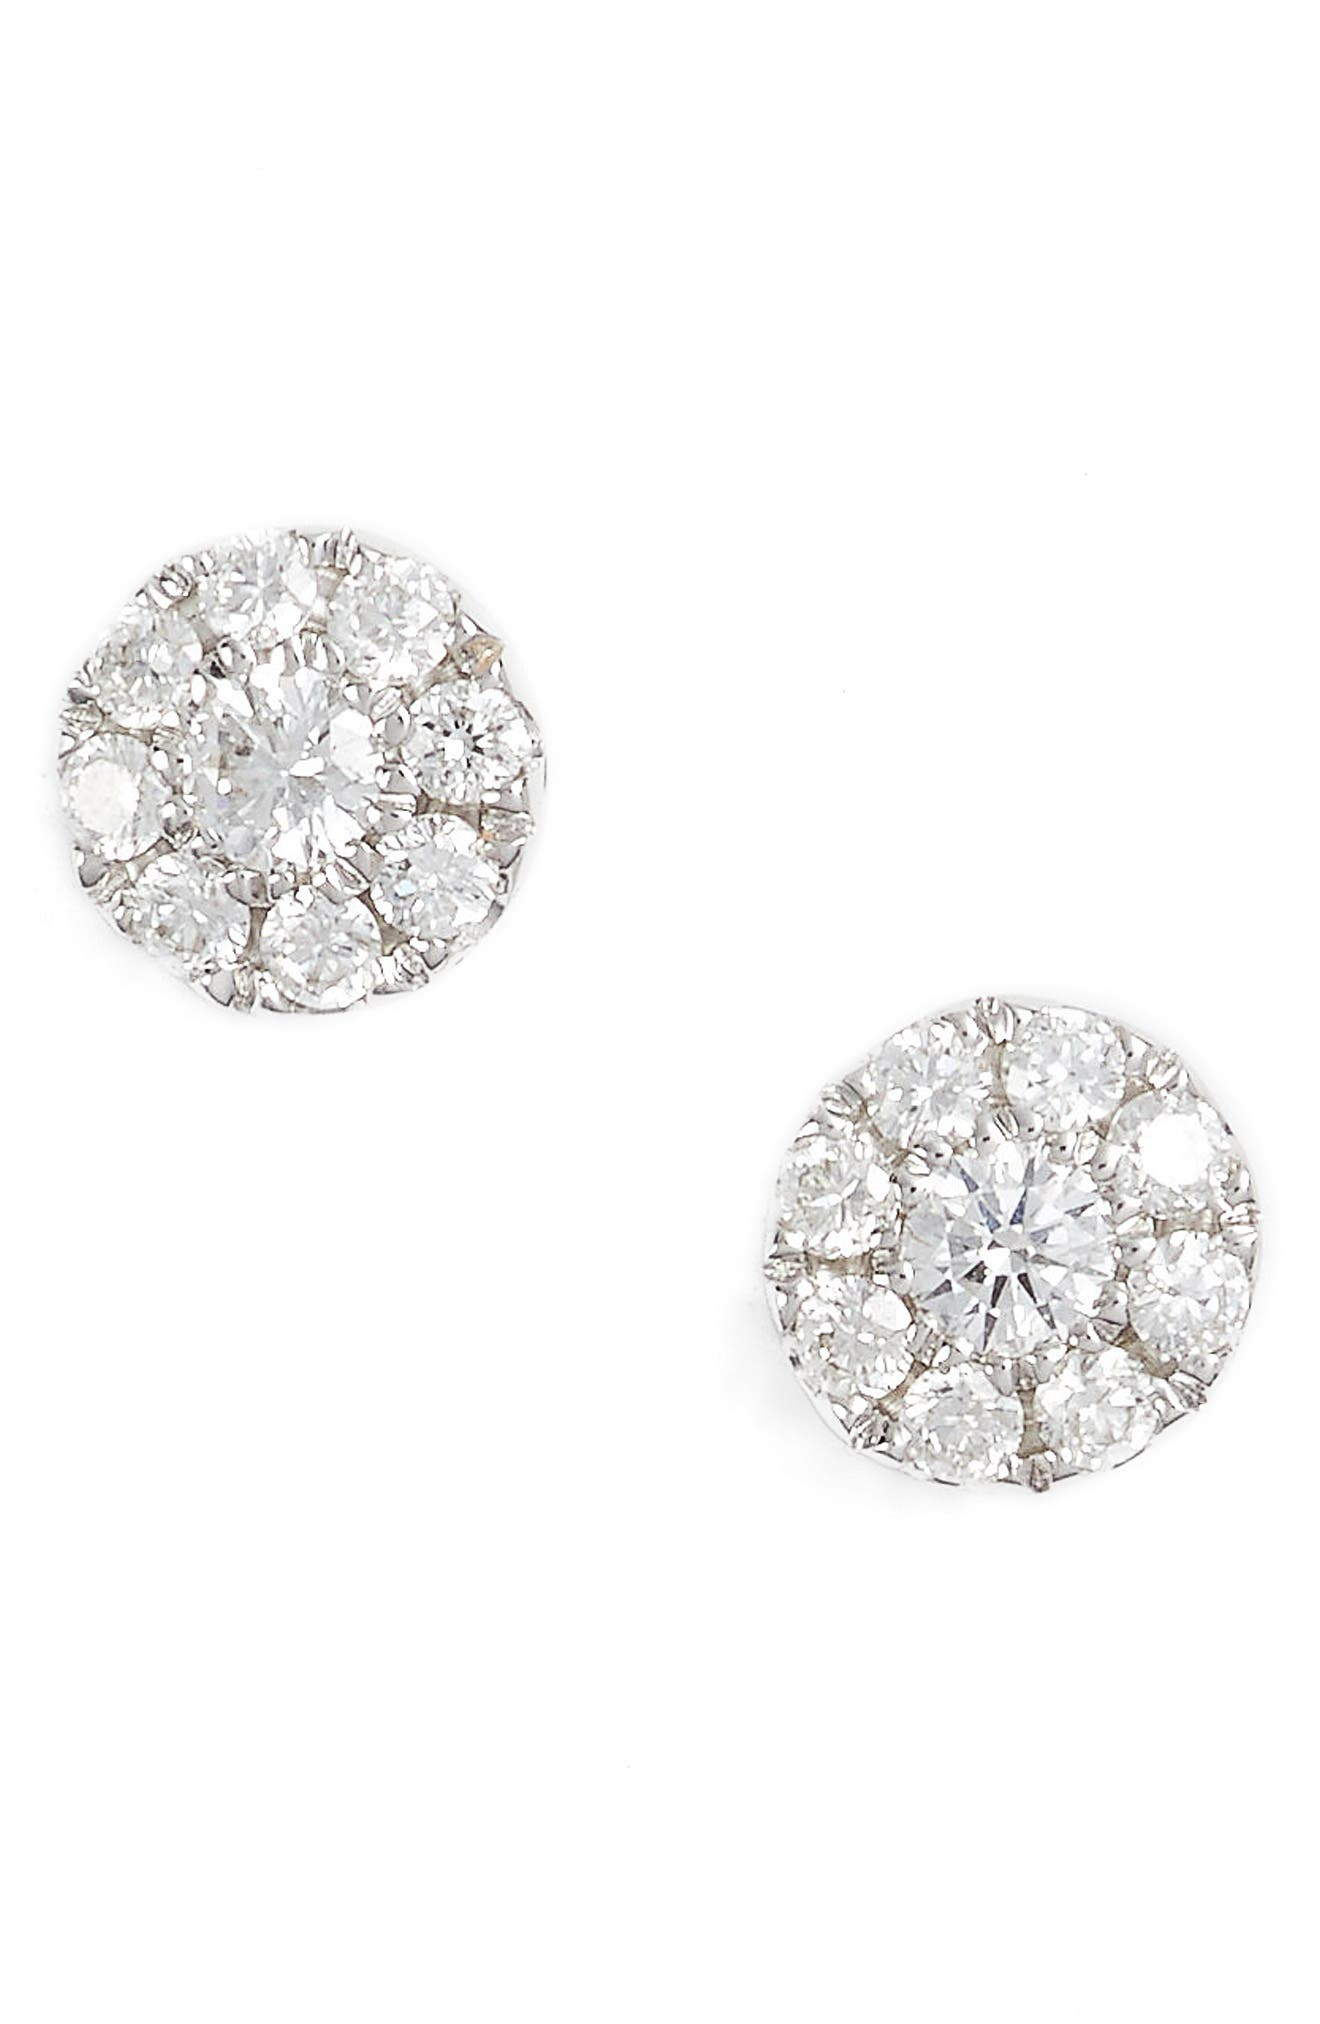 Simple Obsessions Pavé Diamond Stud Earrings,                             Main thumbnail 1, color,                             White Gold